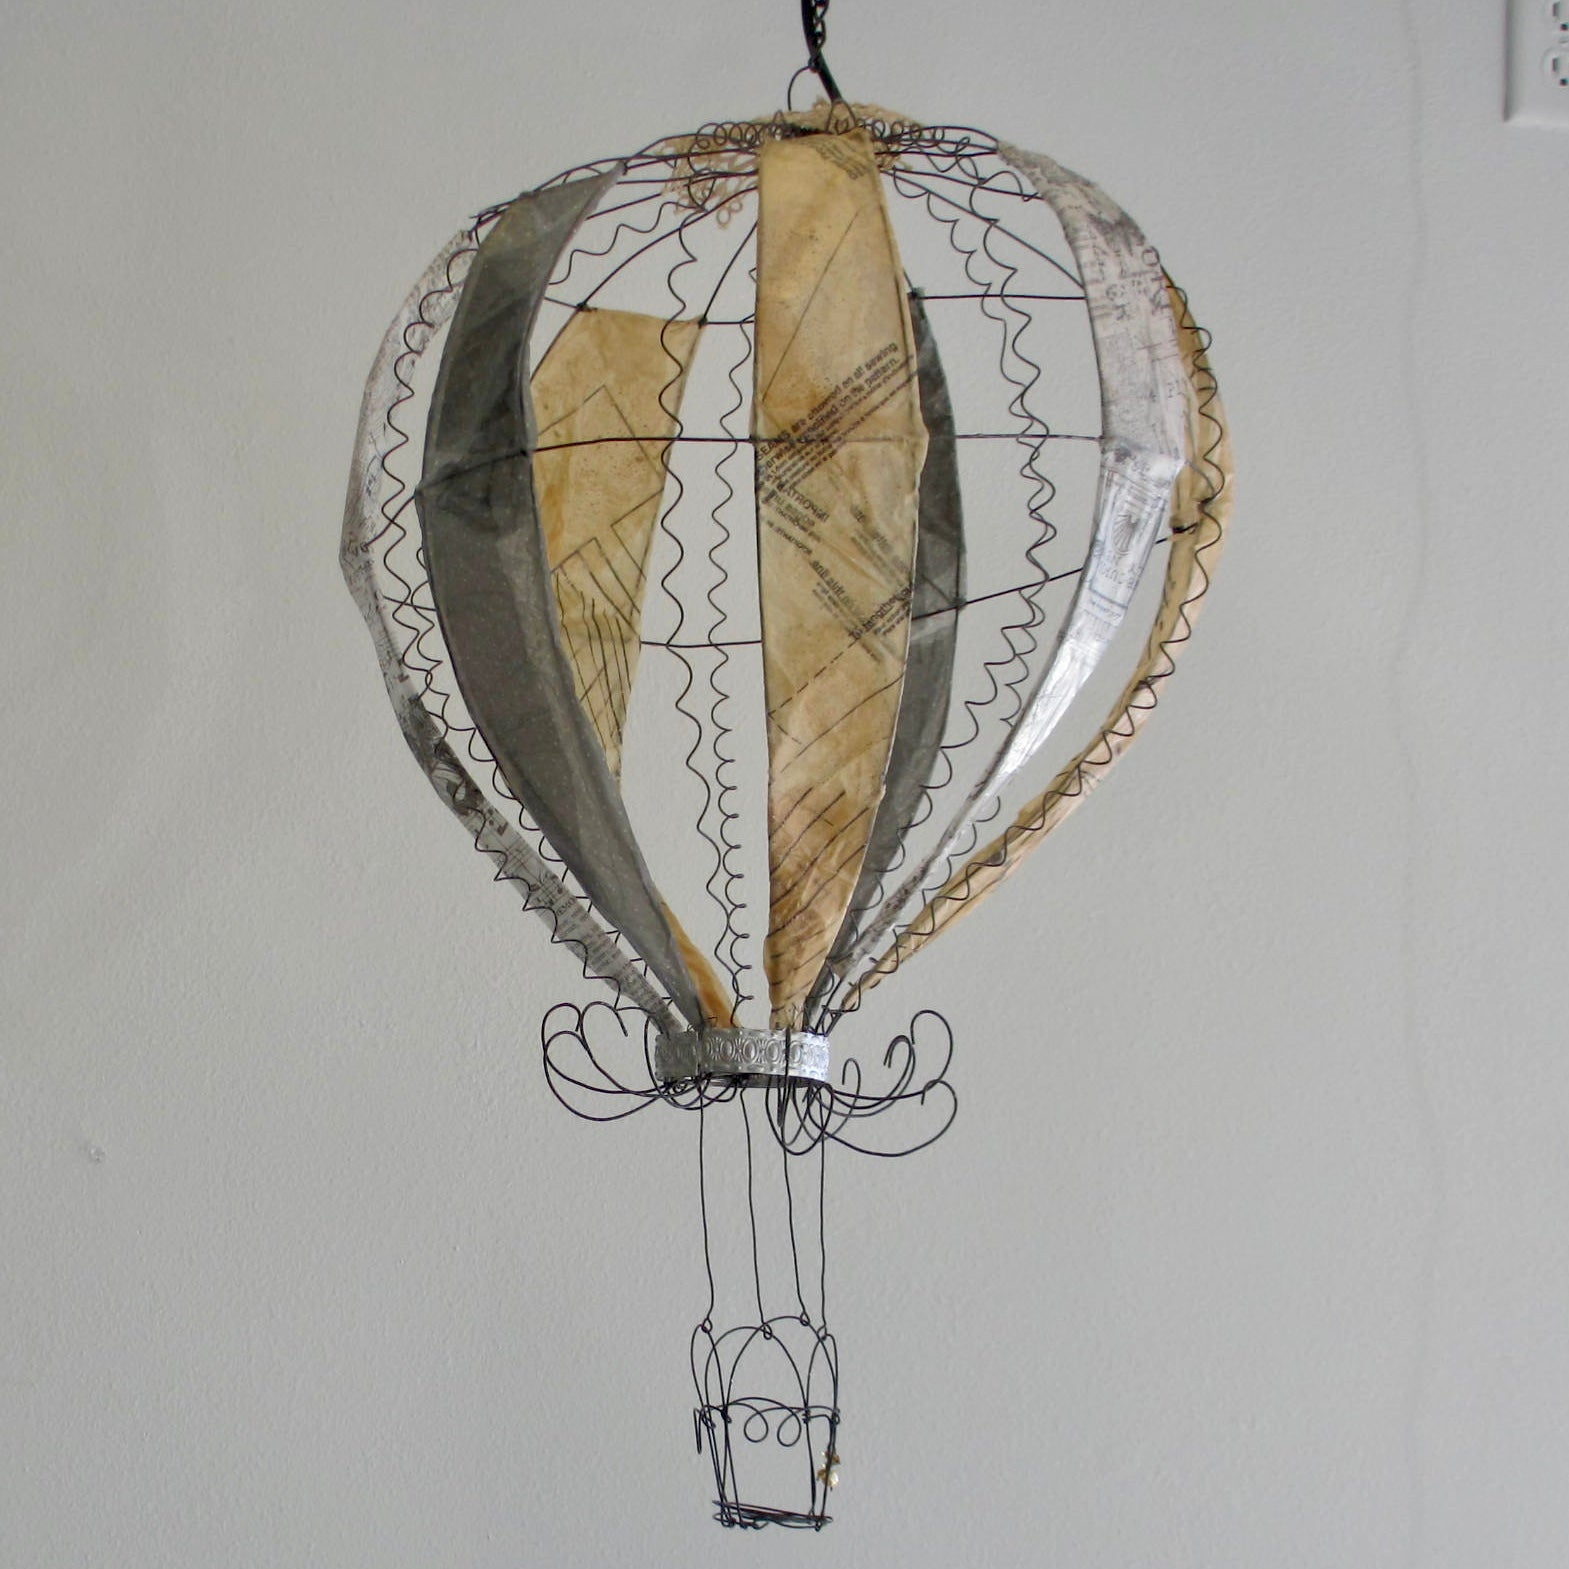 Whimsical Hot Air Balloon